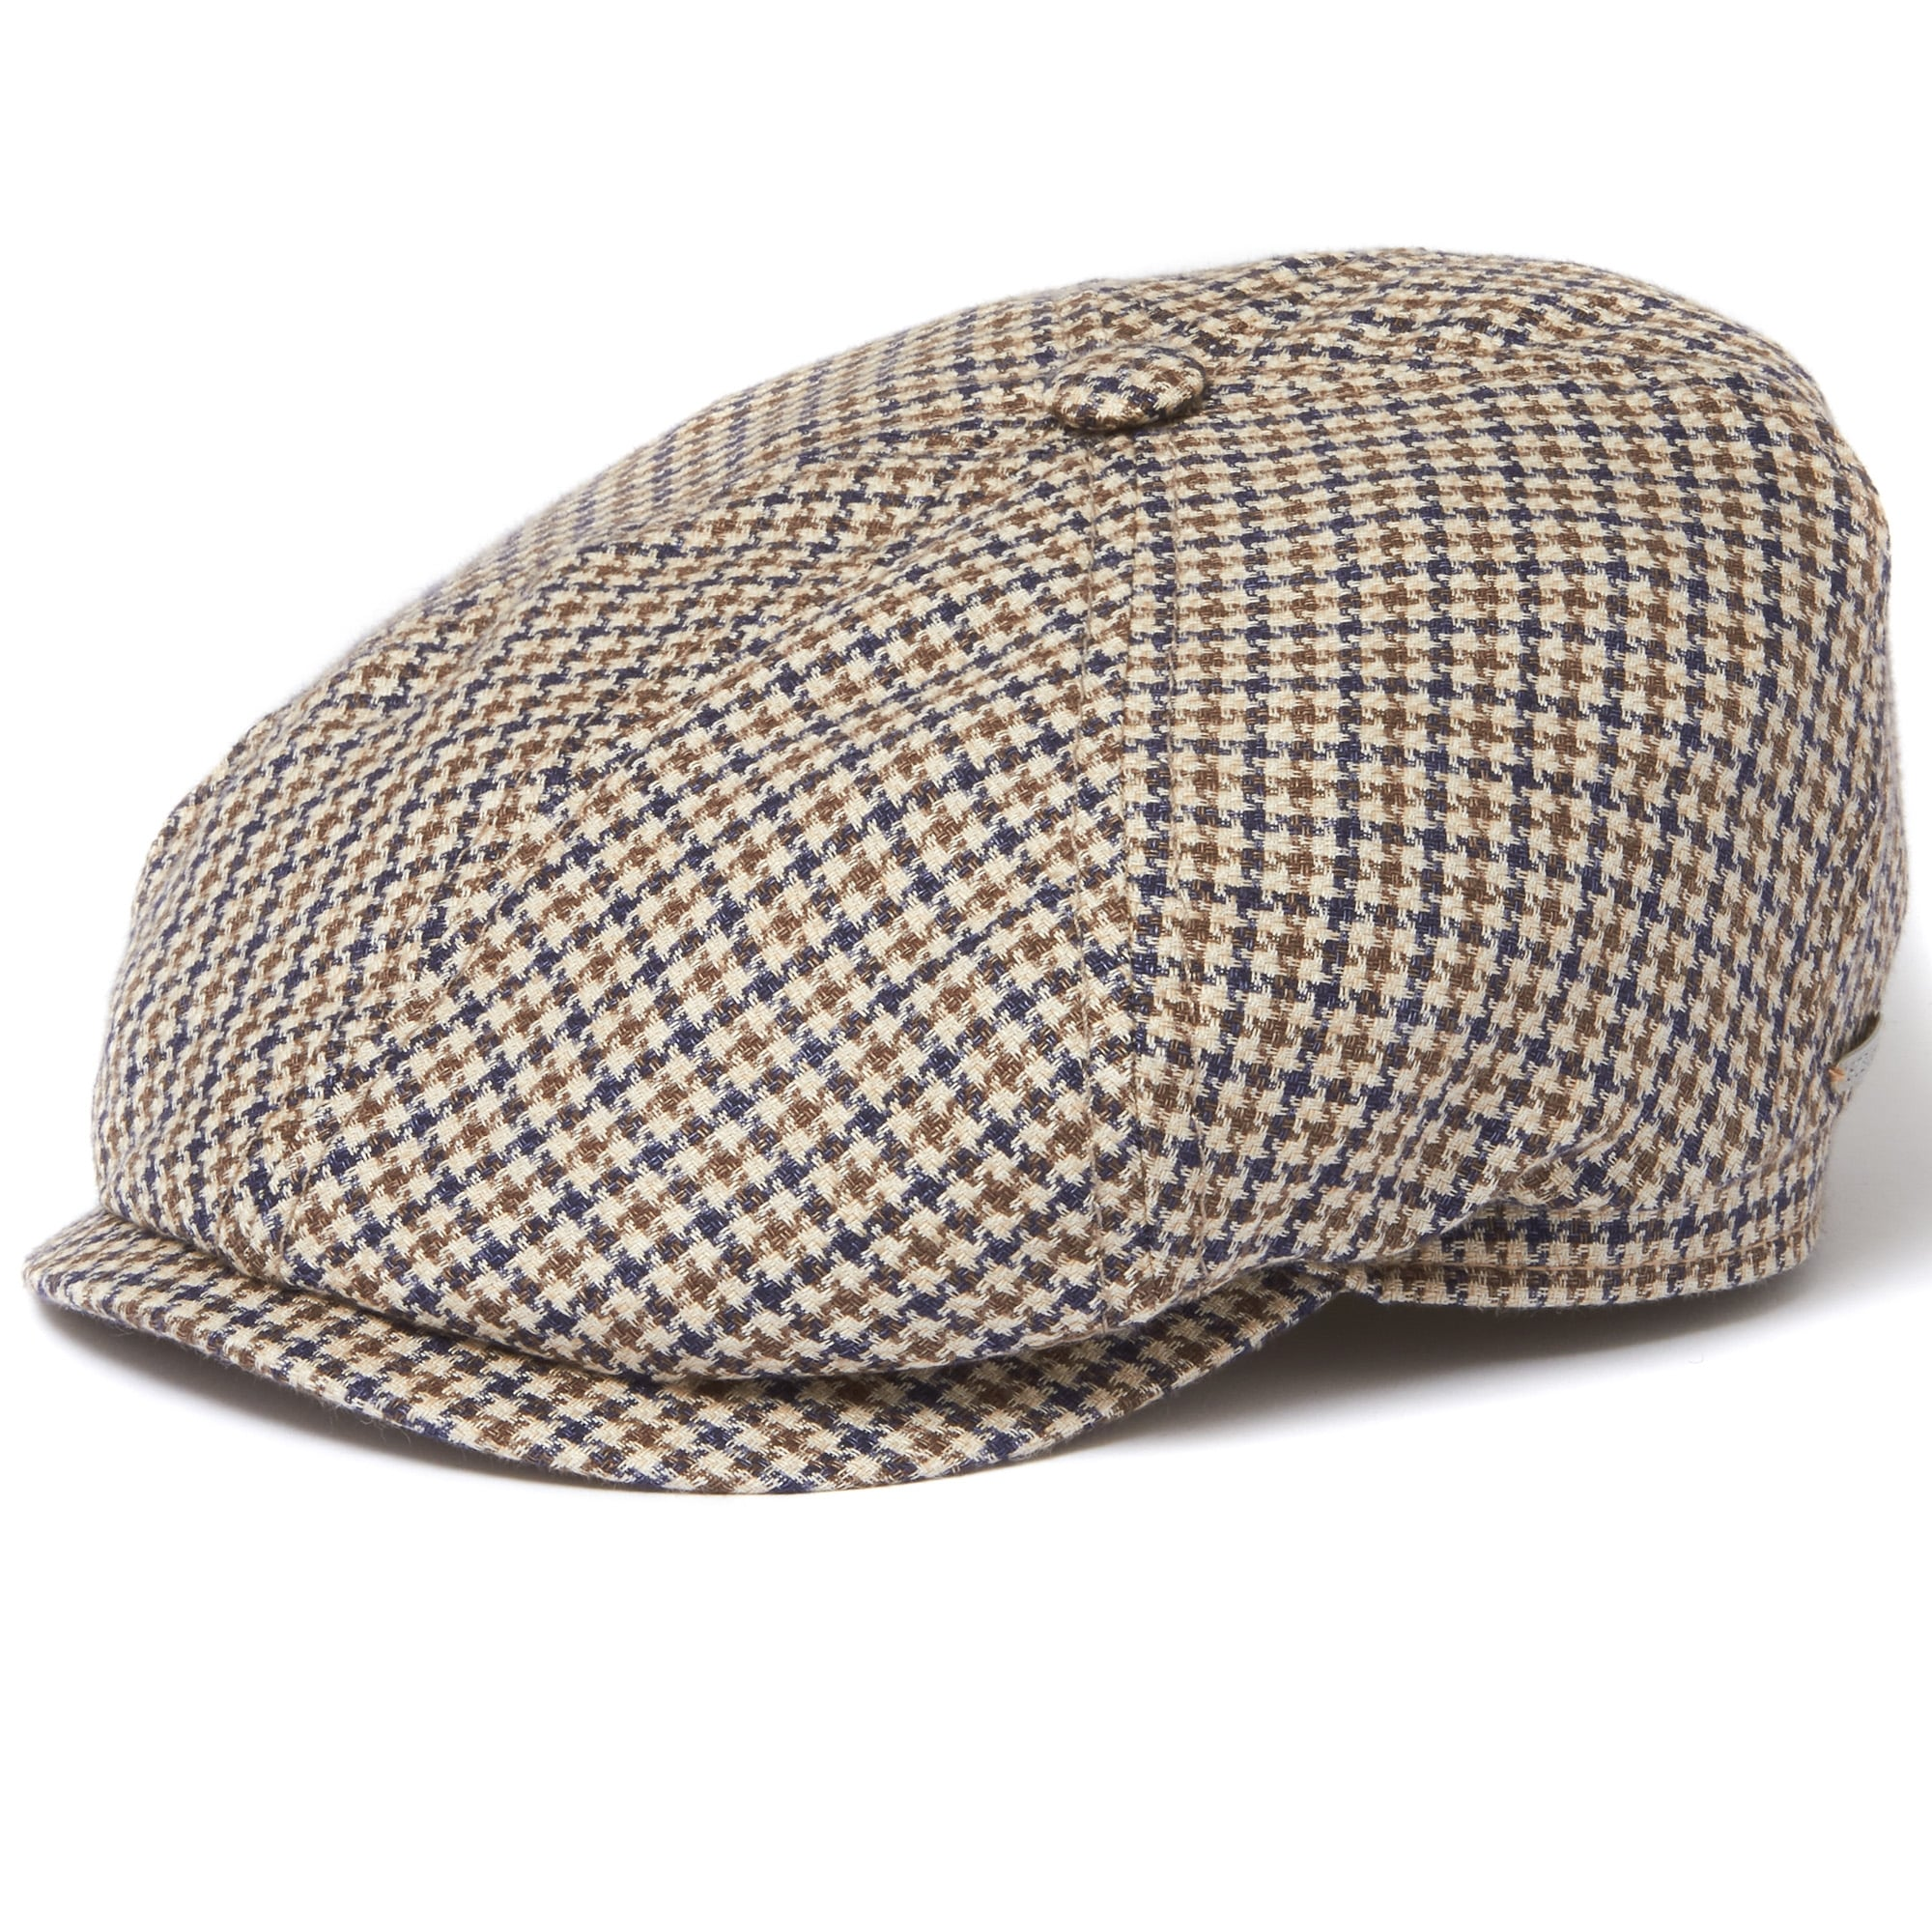 Stetson Houndstooth Narrow Check 6-Panel Flat Cap  f1bf2c21322